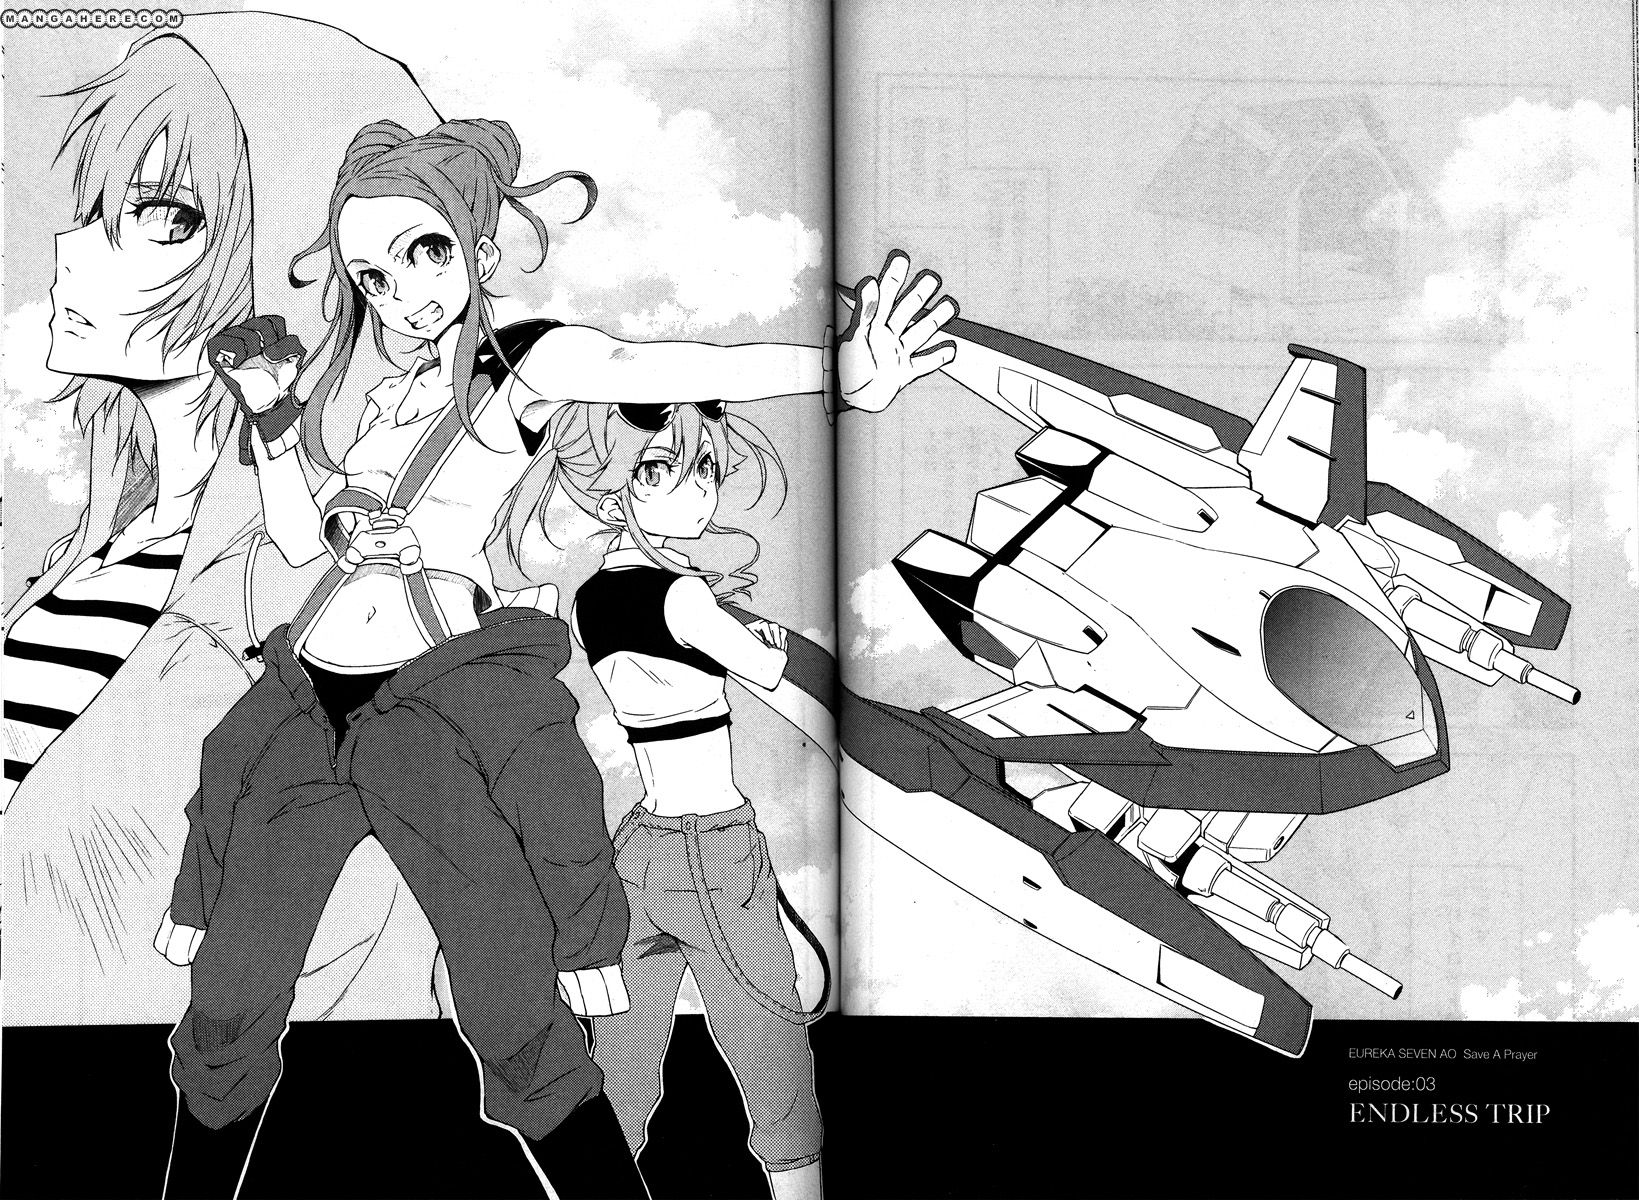 Eureka Seven AO - Save a Prayer 3 Page 2